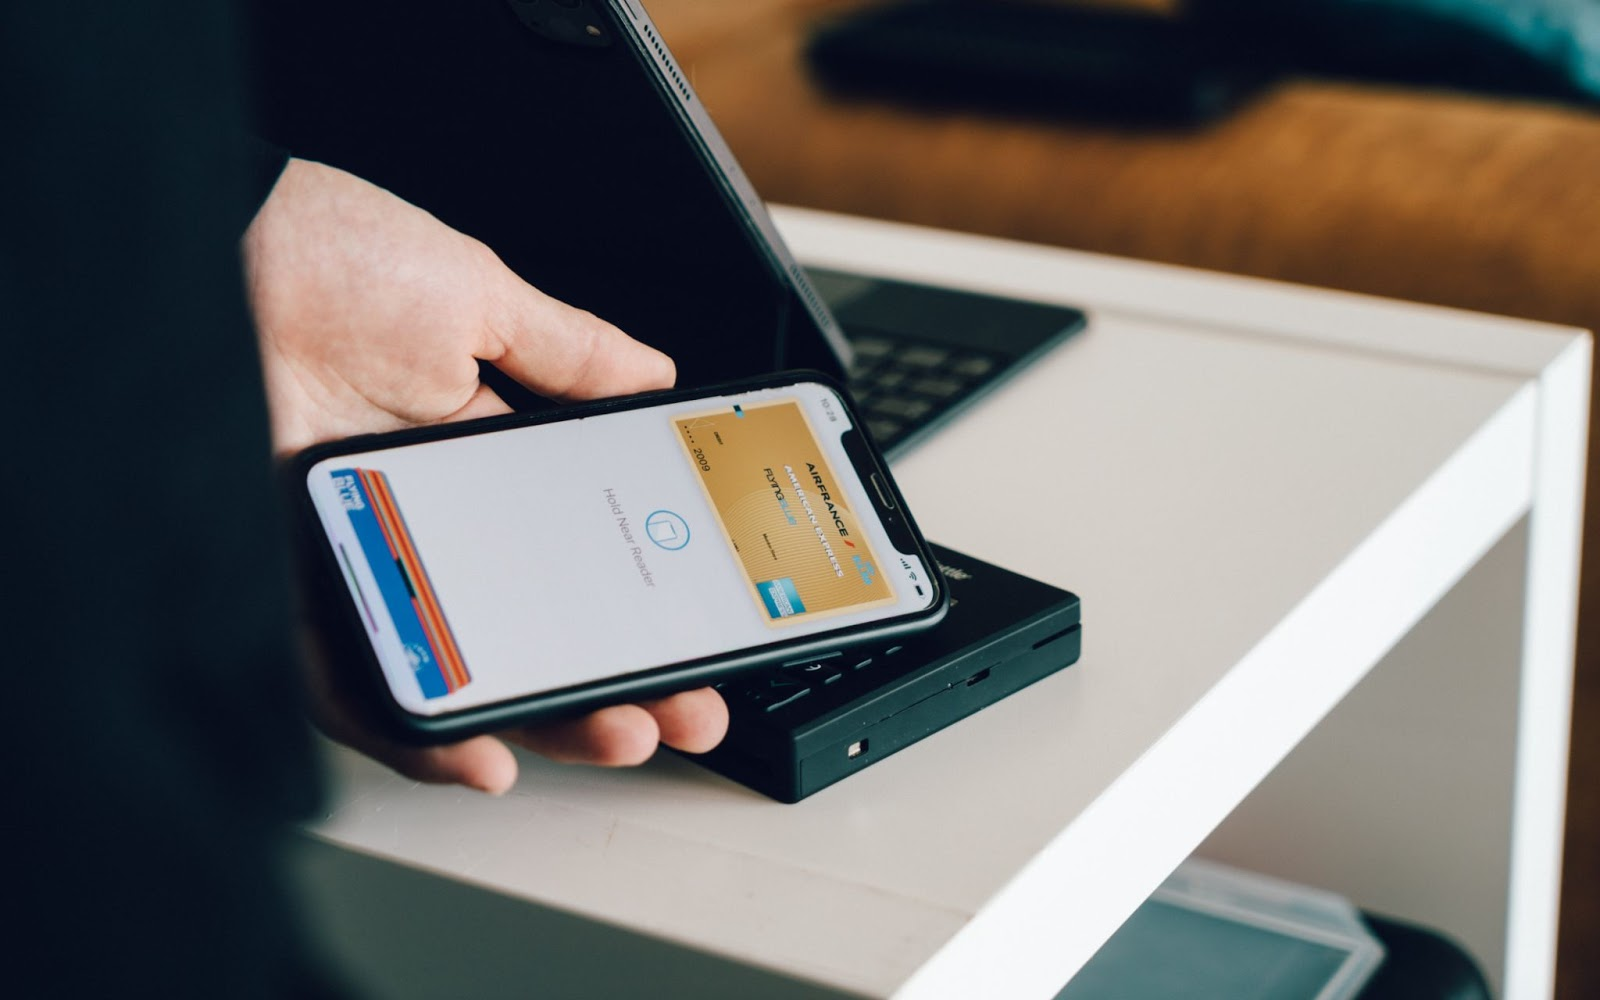 paying with a mobile wallet